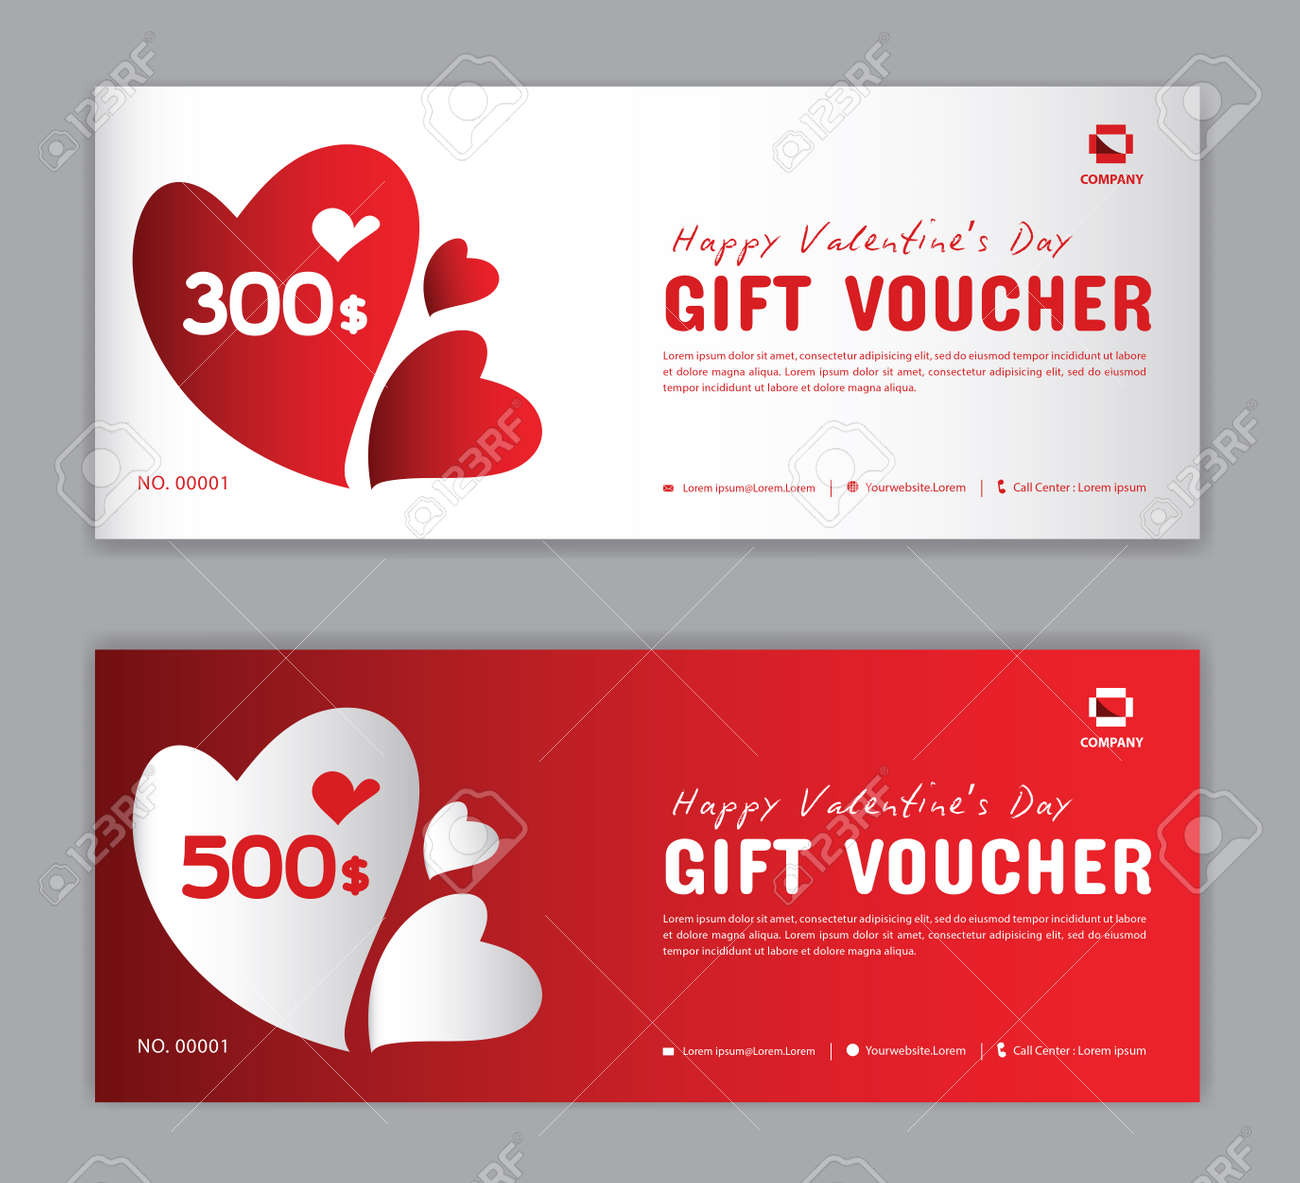 Gift Voucher template, Coupon, discount, for Happy Valentine Day, Sale banner, Horizontal layout, discount cards, headers, website, red background, vector illustration EPS10 - 137632455